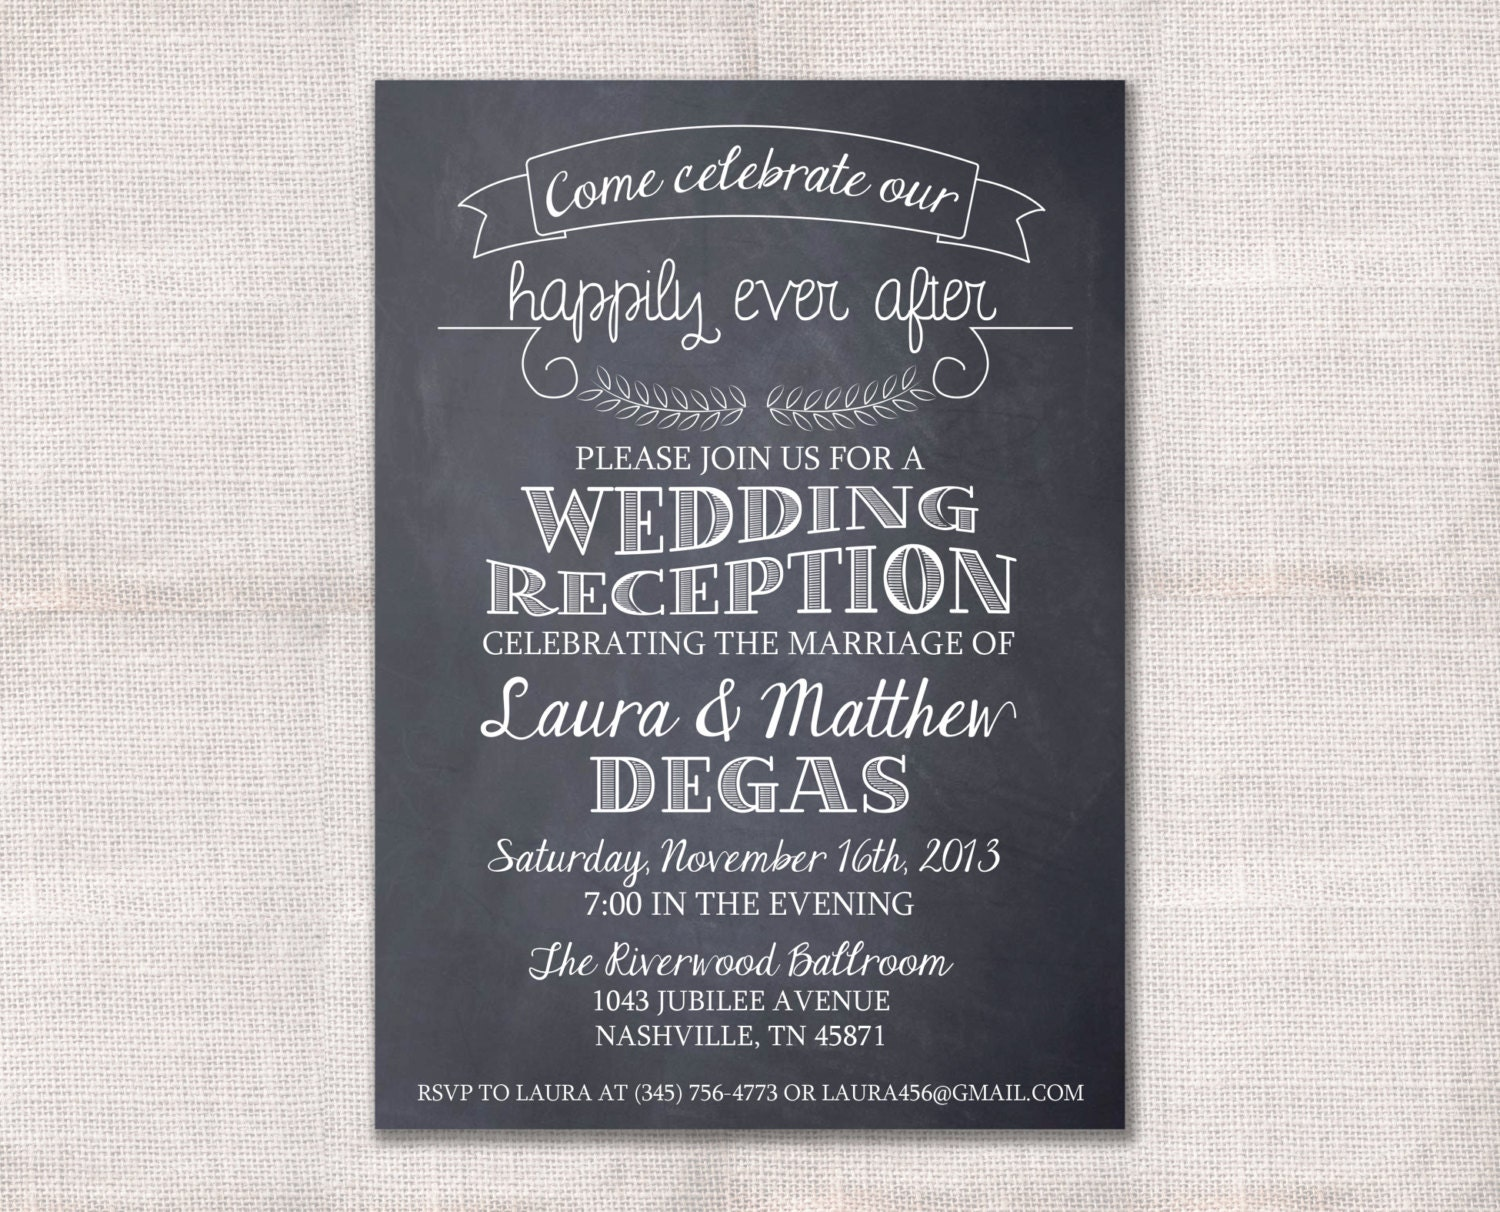 Wedding reception celebration after party invitation custom for Wedding engagement party invitations